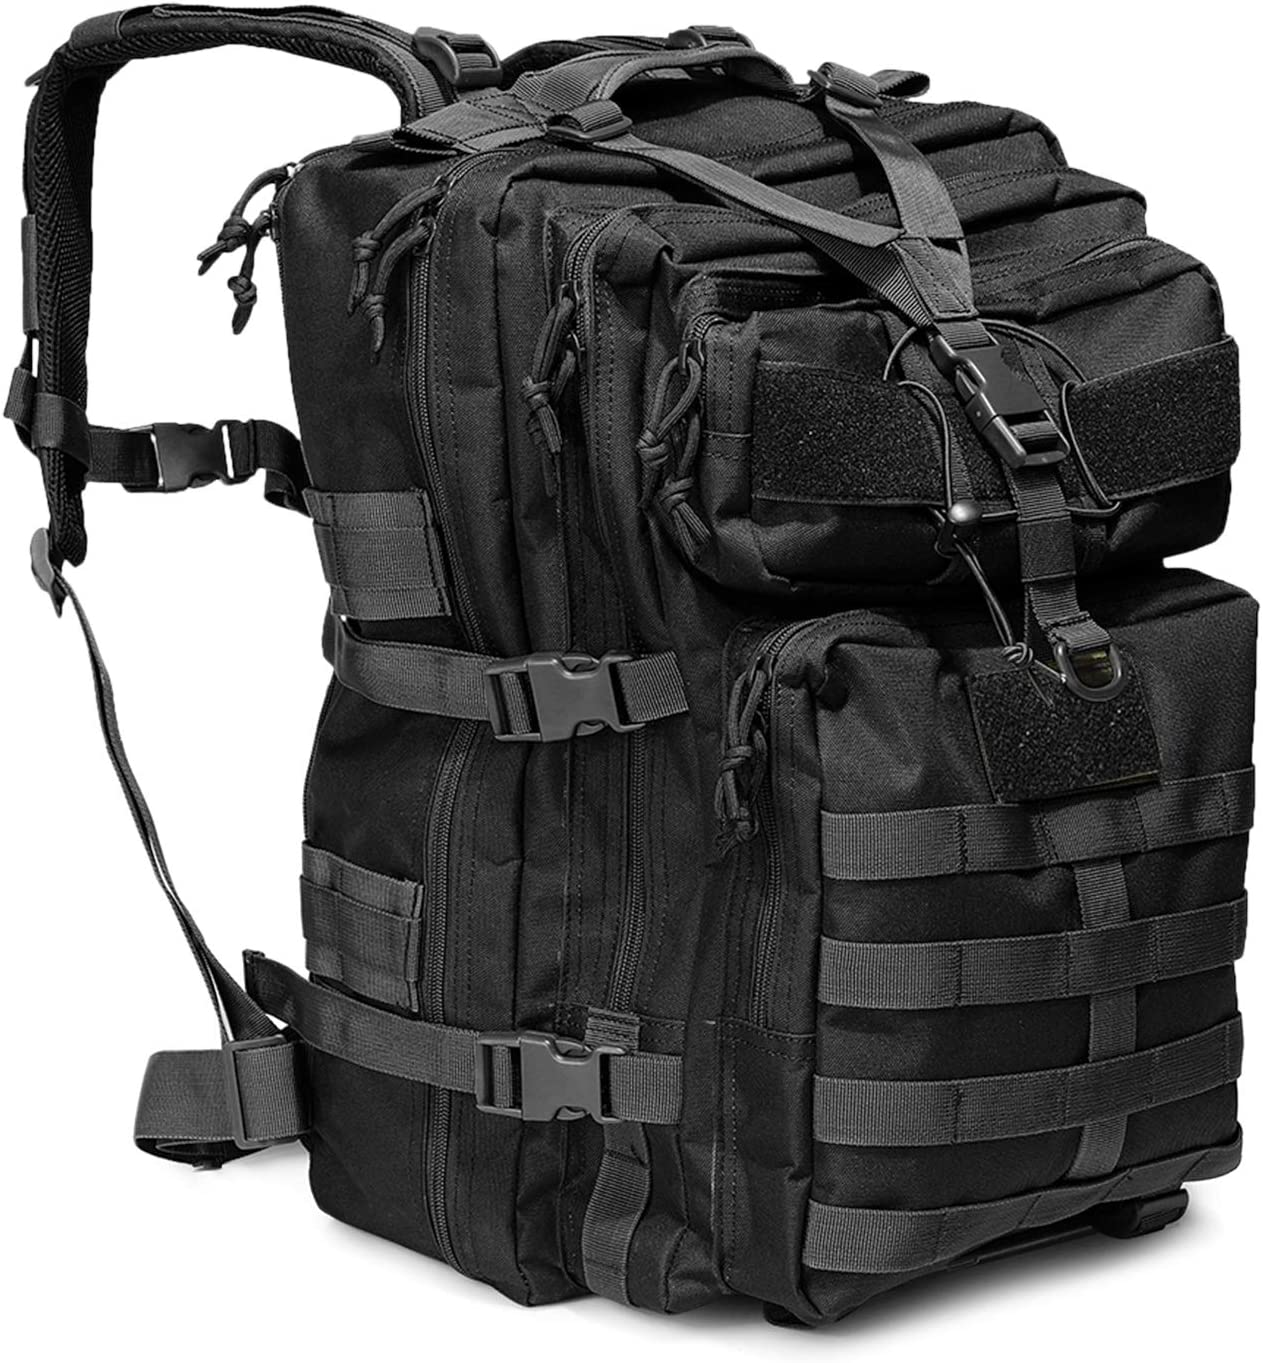 Allnice Tactical Backpack 50L Military 3 Rucksack Large Max 43% OFF New Shipping Free